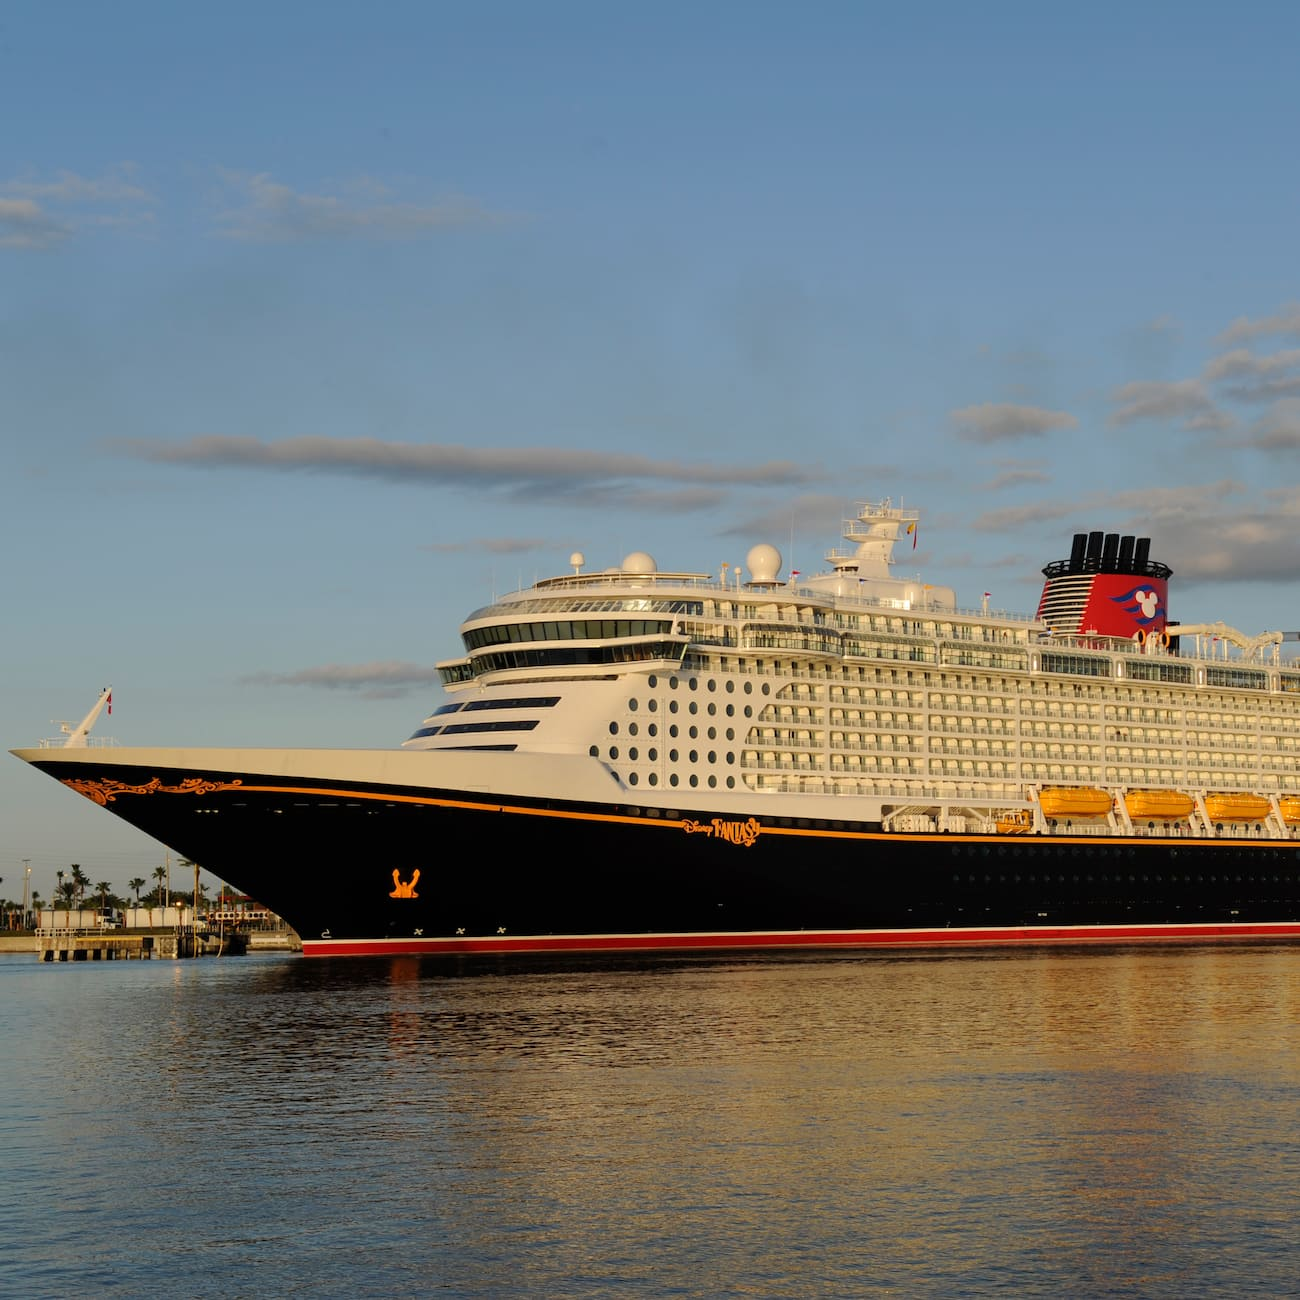 The Disney Cruise Line cruise ship, the Disney Fantasy, sails across the sea